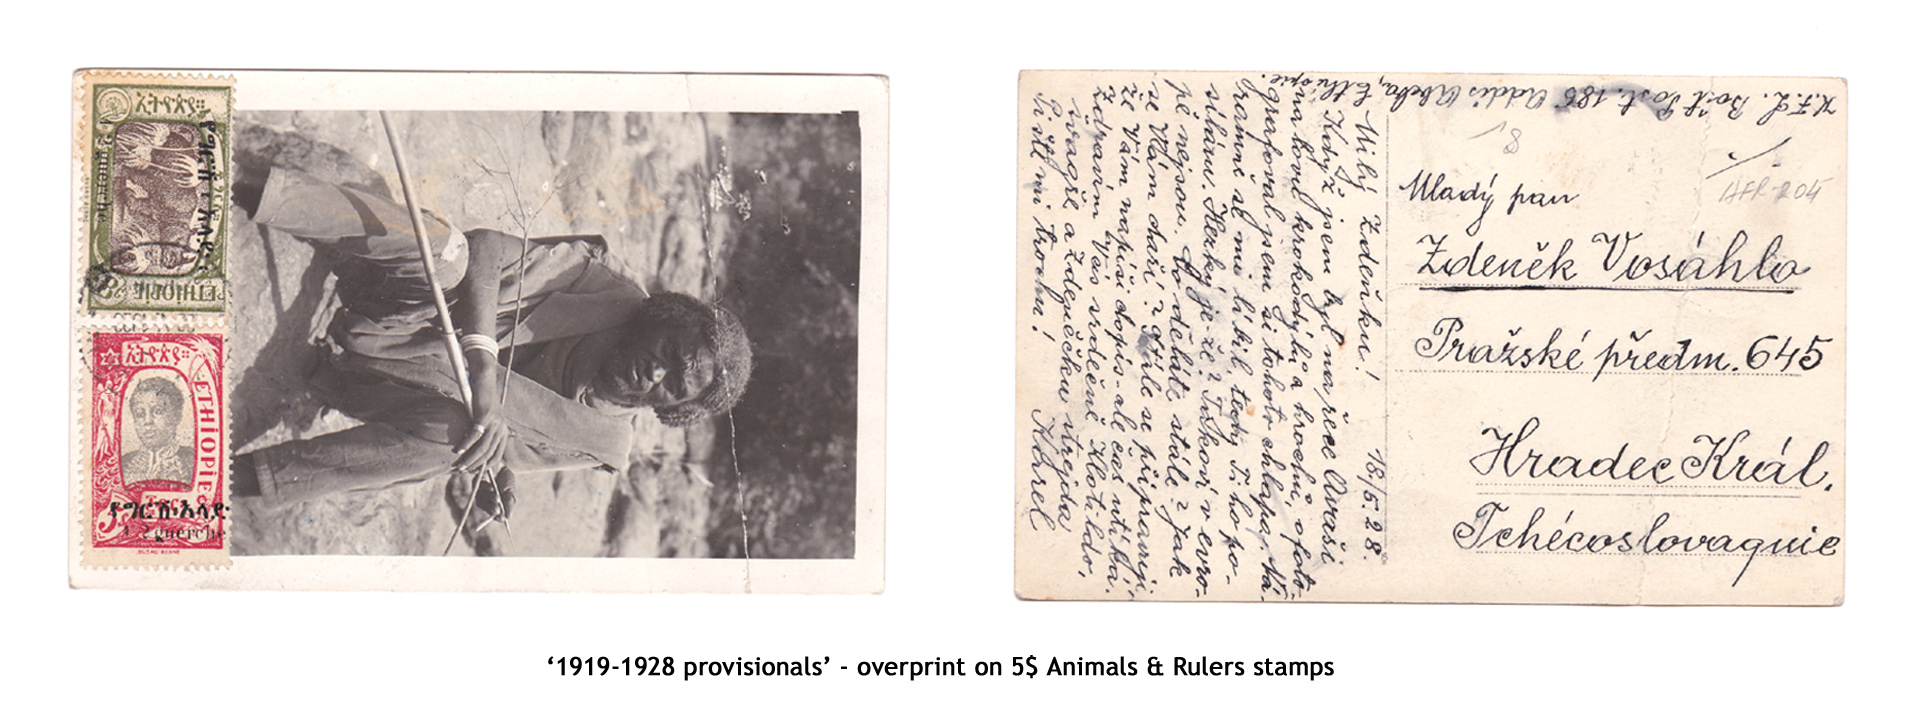 1919-1928 provisionals' – overprint on 5$ Animals & Rulers stamps